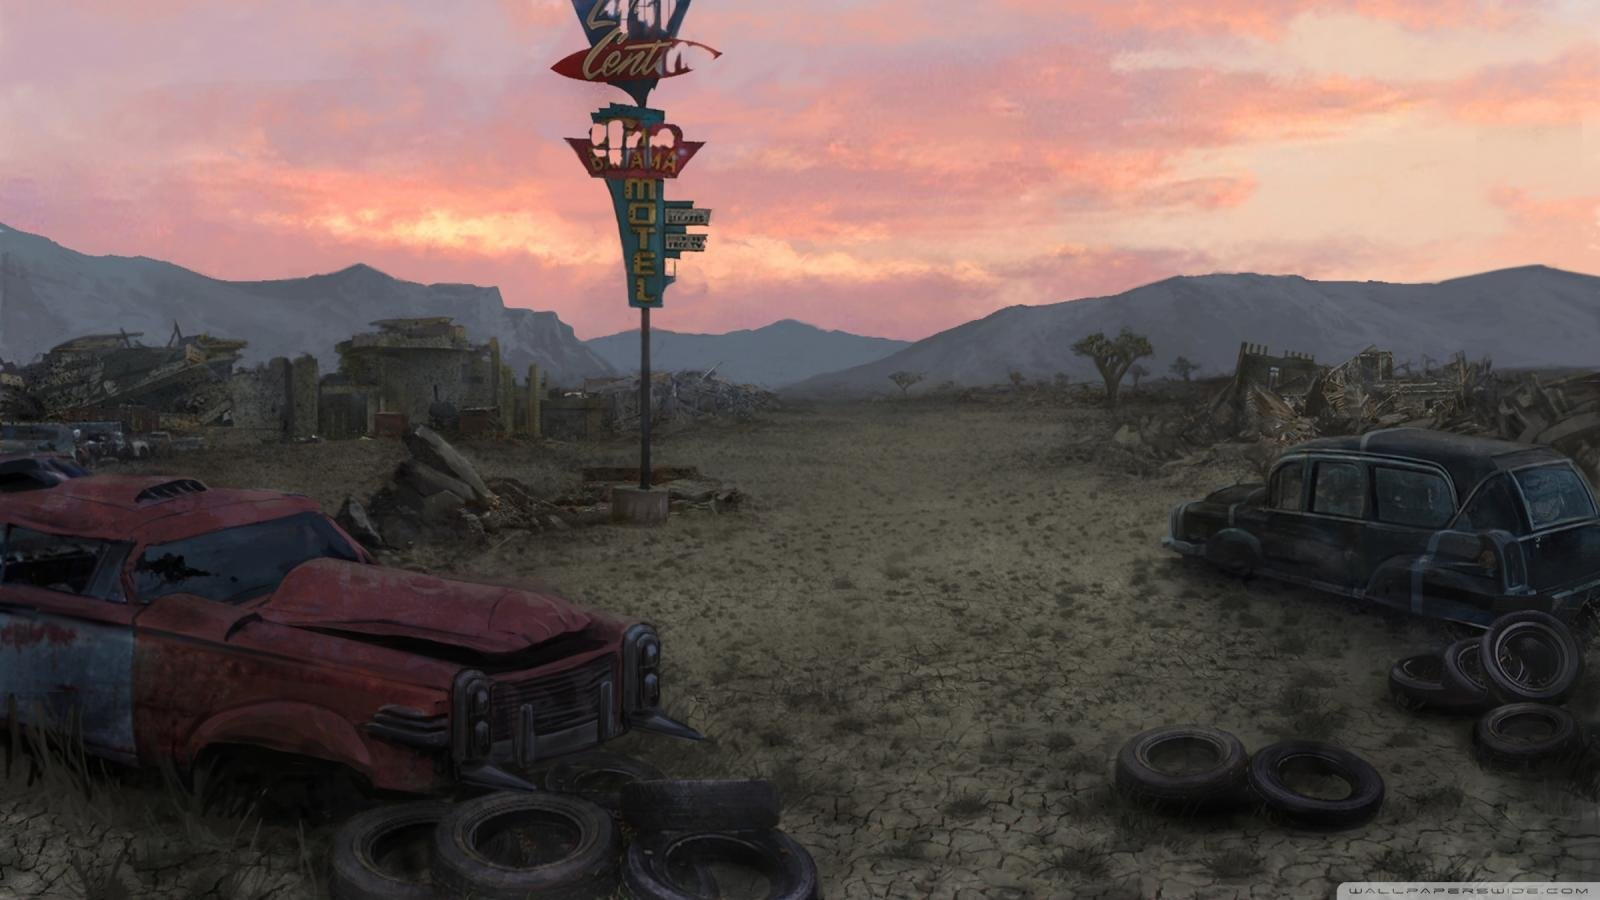 fallout: new vegas wallpapers 1600x900 desktop backgrounds